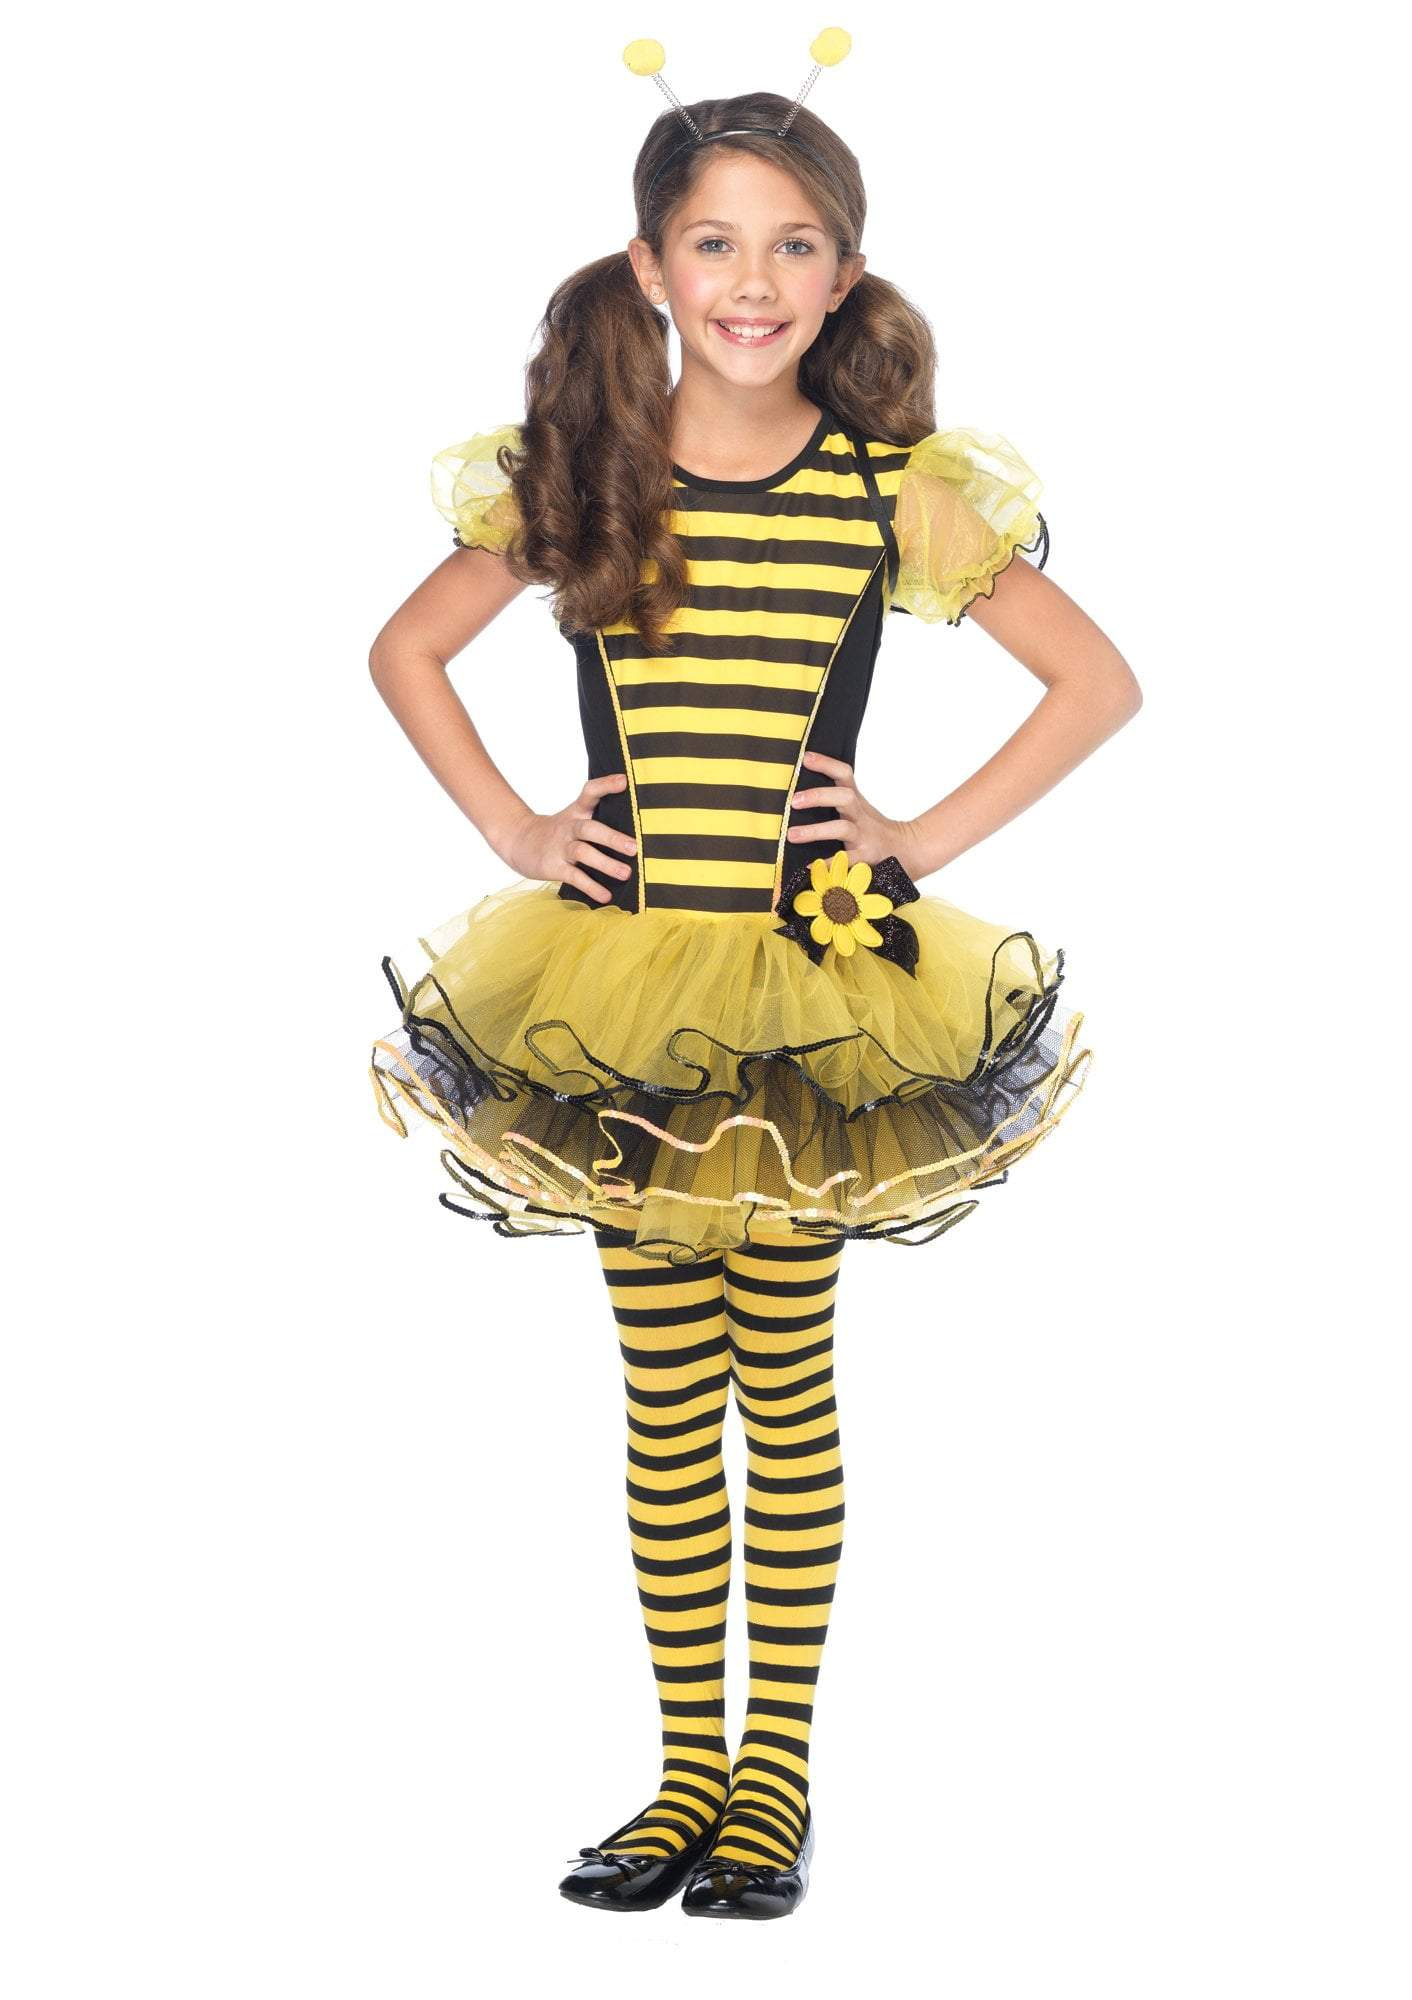 Leg Avenue Costumes BLACK/YELLO / LARGE Girls Buzzzy Bee Dress Costume